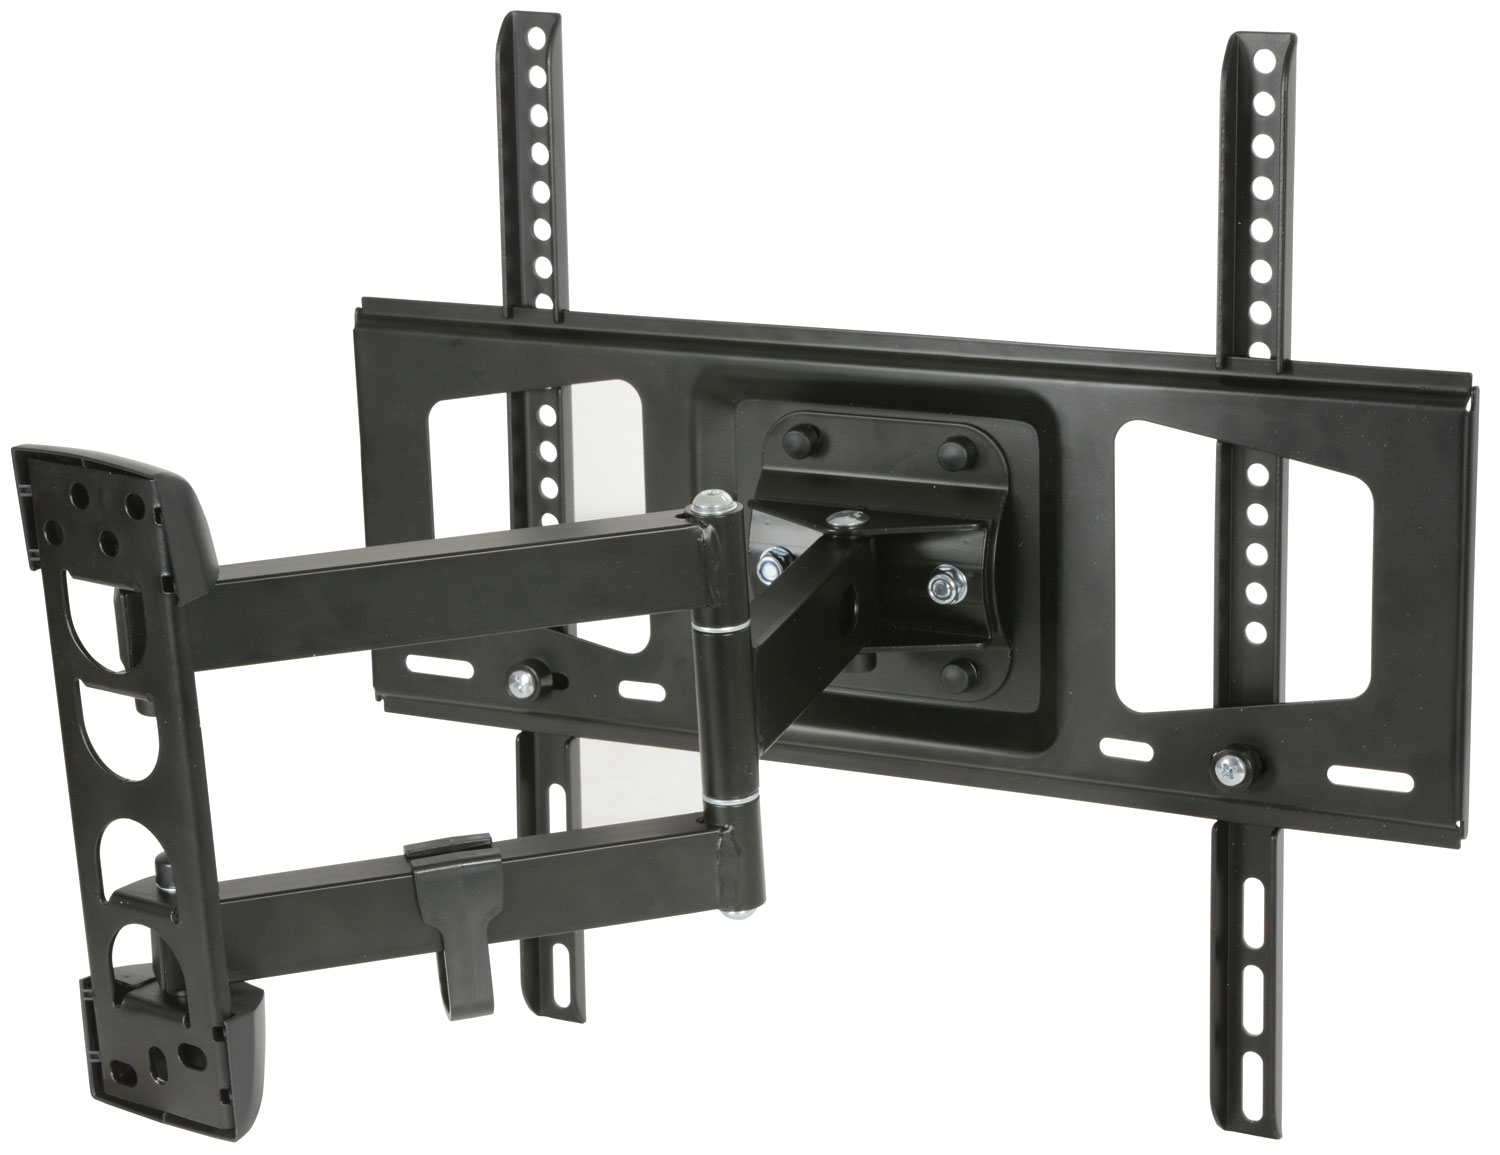 Full Motion Double Arm TV Wall Bracket